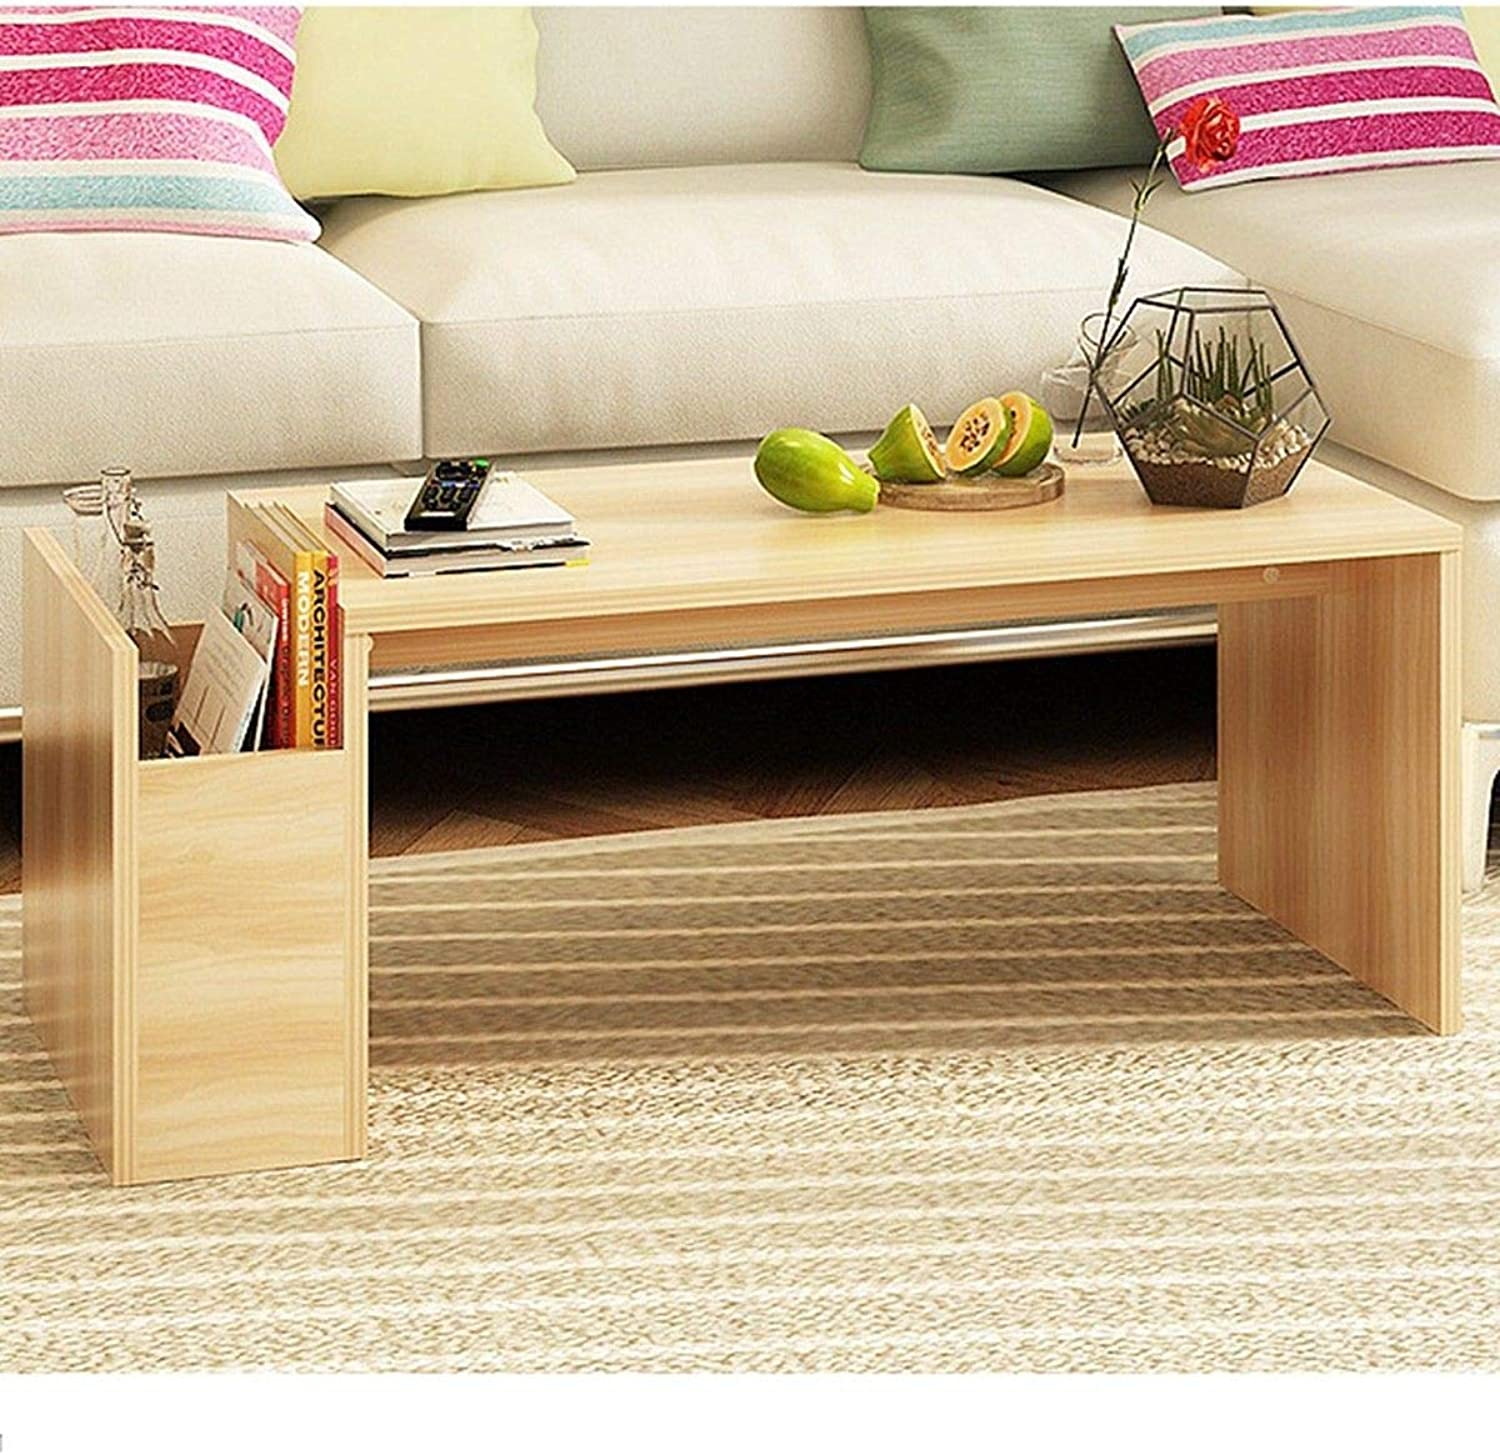 Modern Coffee Table for Living Room Coffee Table with Storage Wood Organizer Modern Coffee Table for Living Room Coffee Table with Storage Wood Organizer